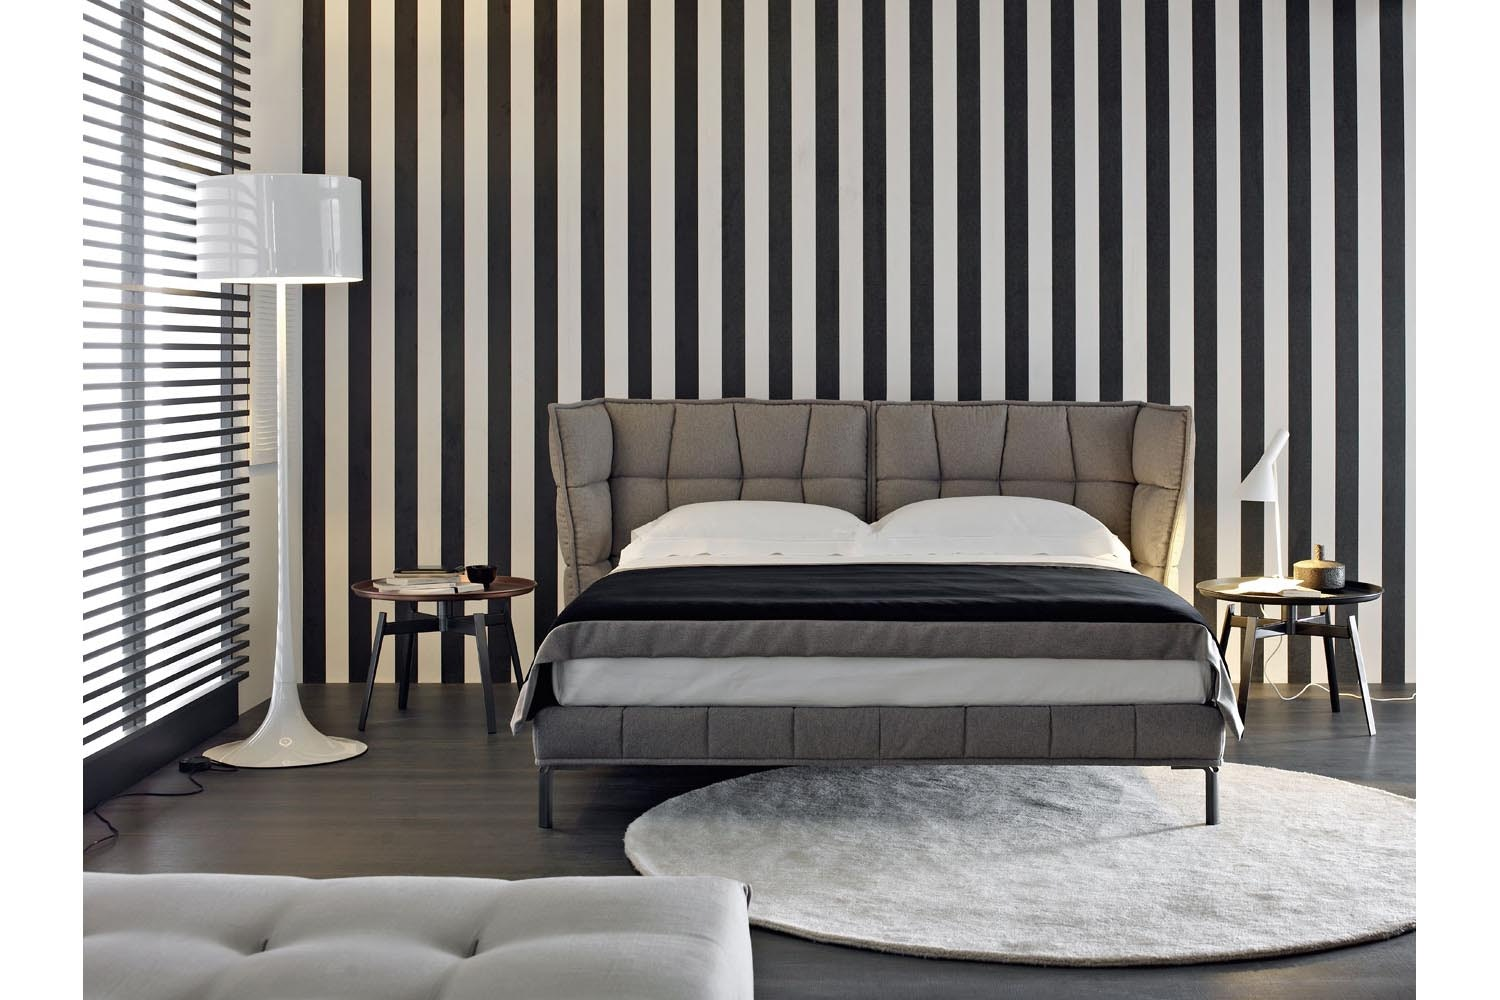 Husk Bed by Patricia Urquiola for B&B Italia